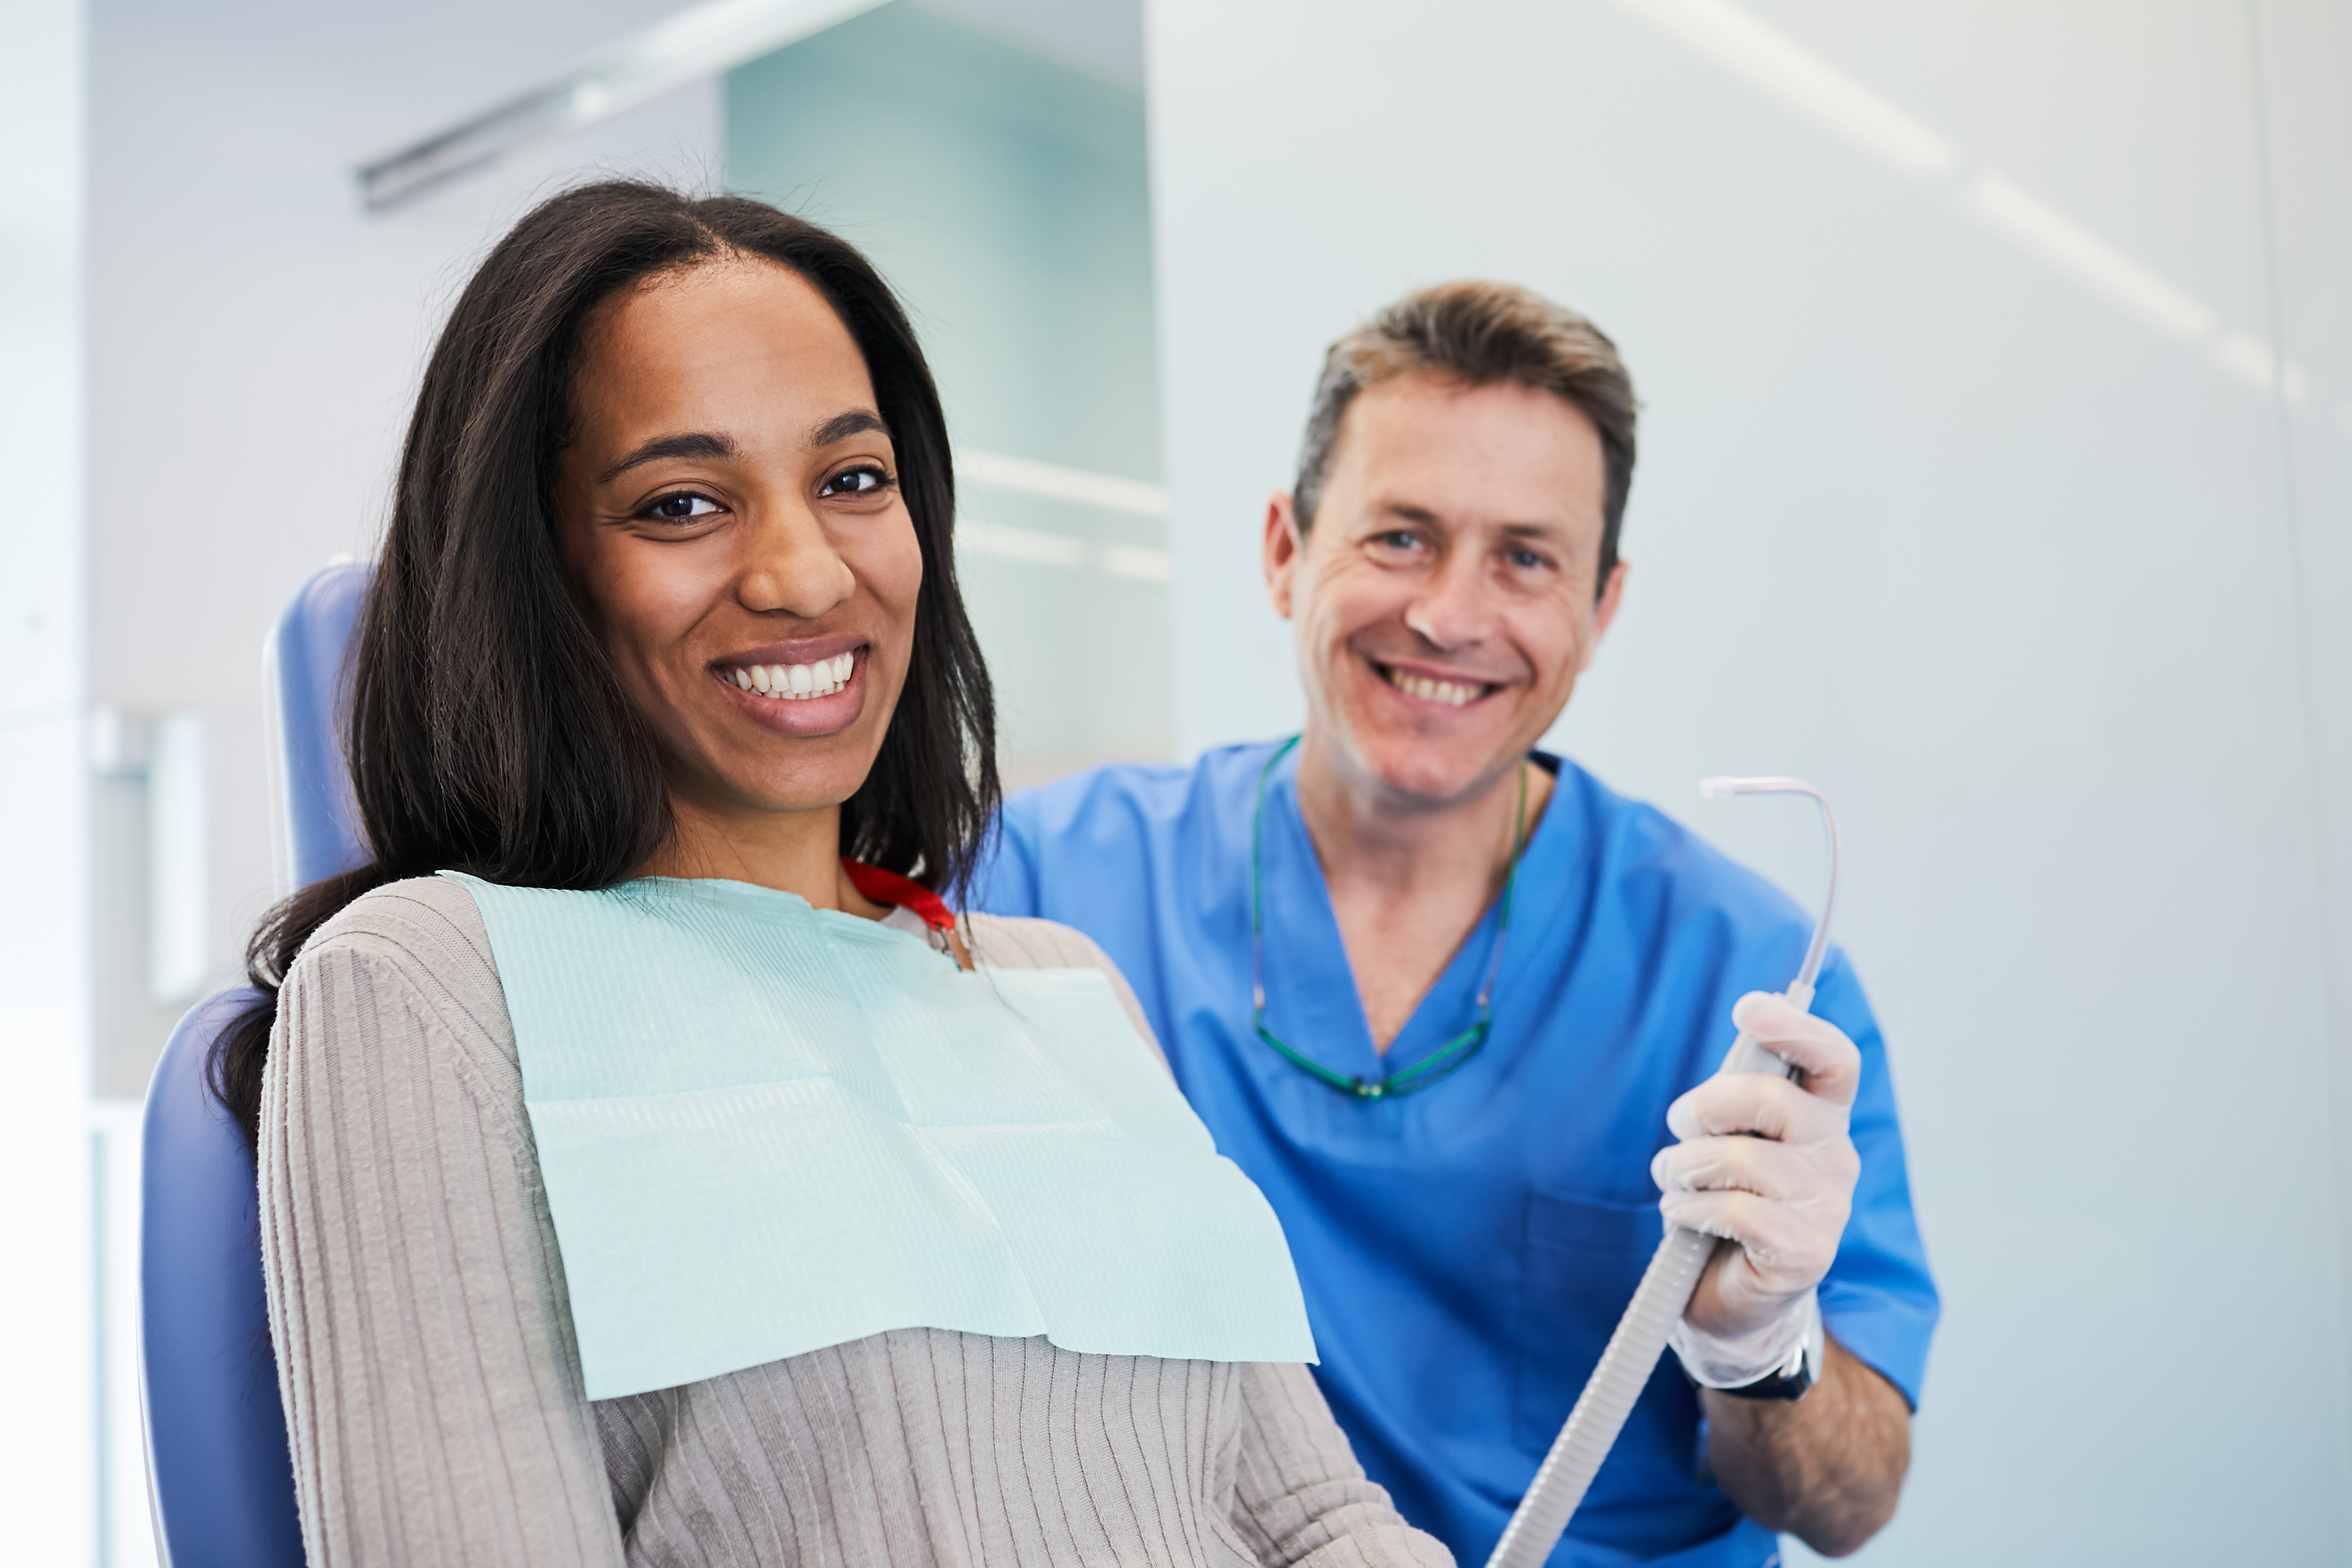 Dental Cleaning In North Central Florida